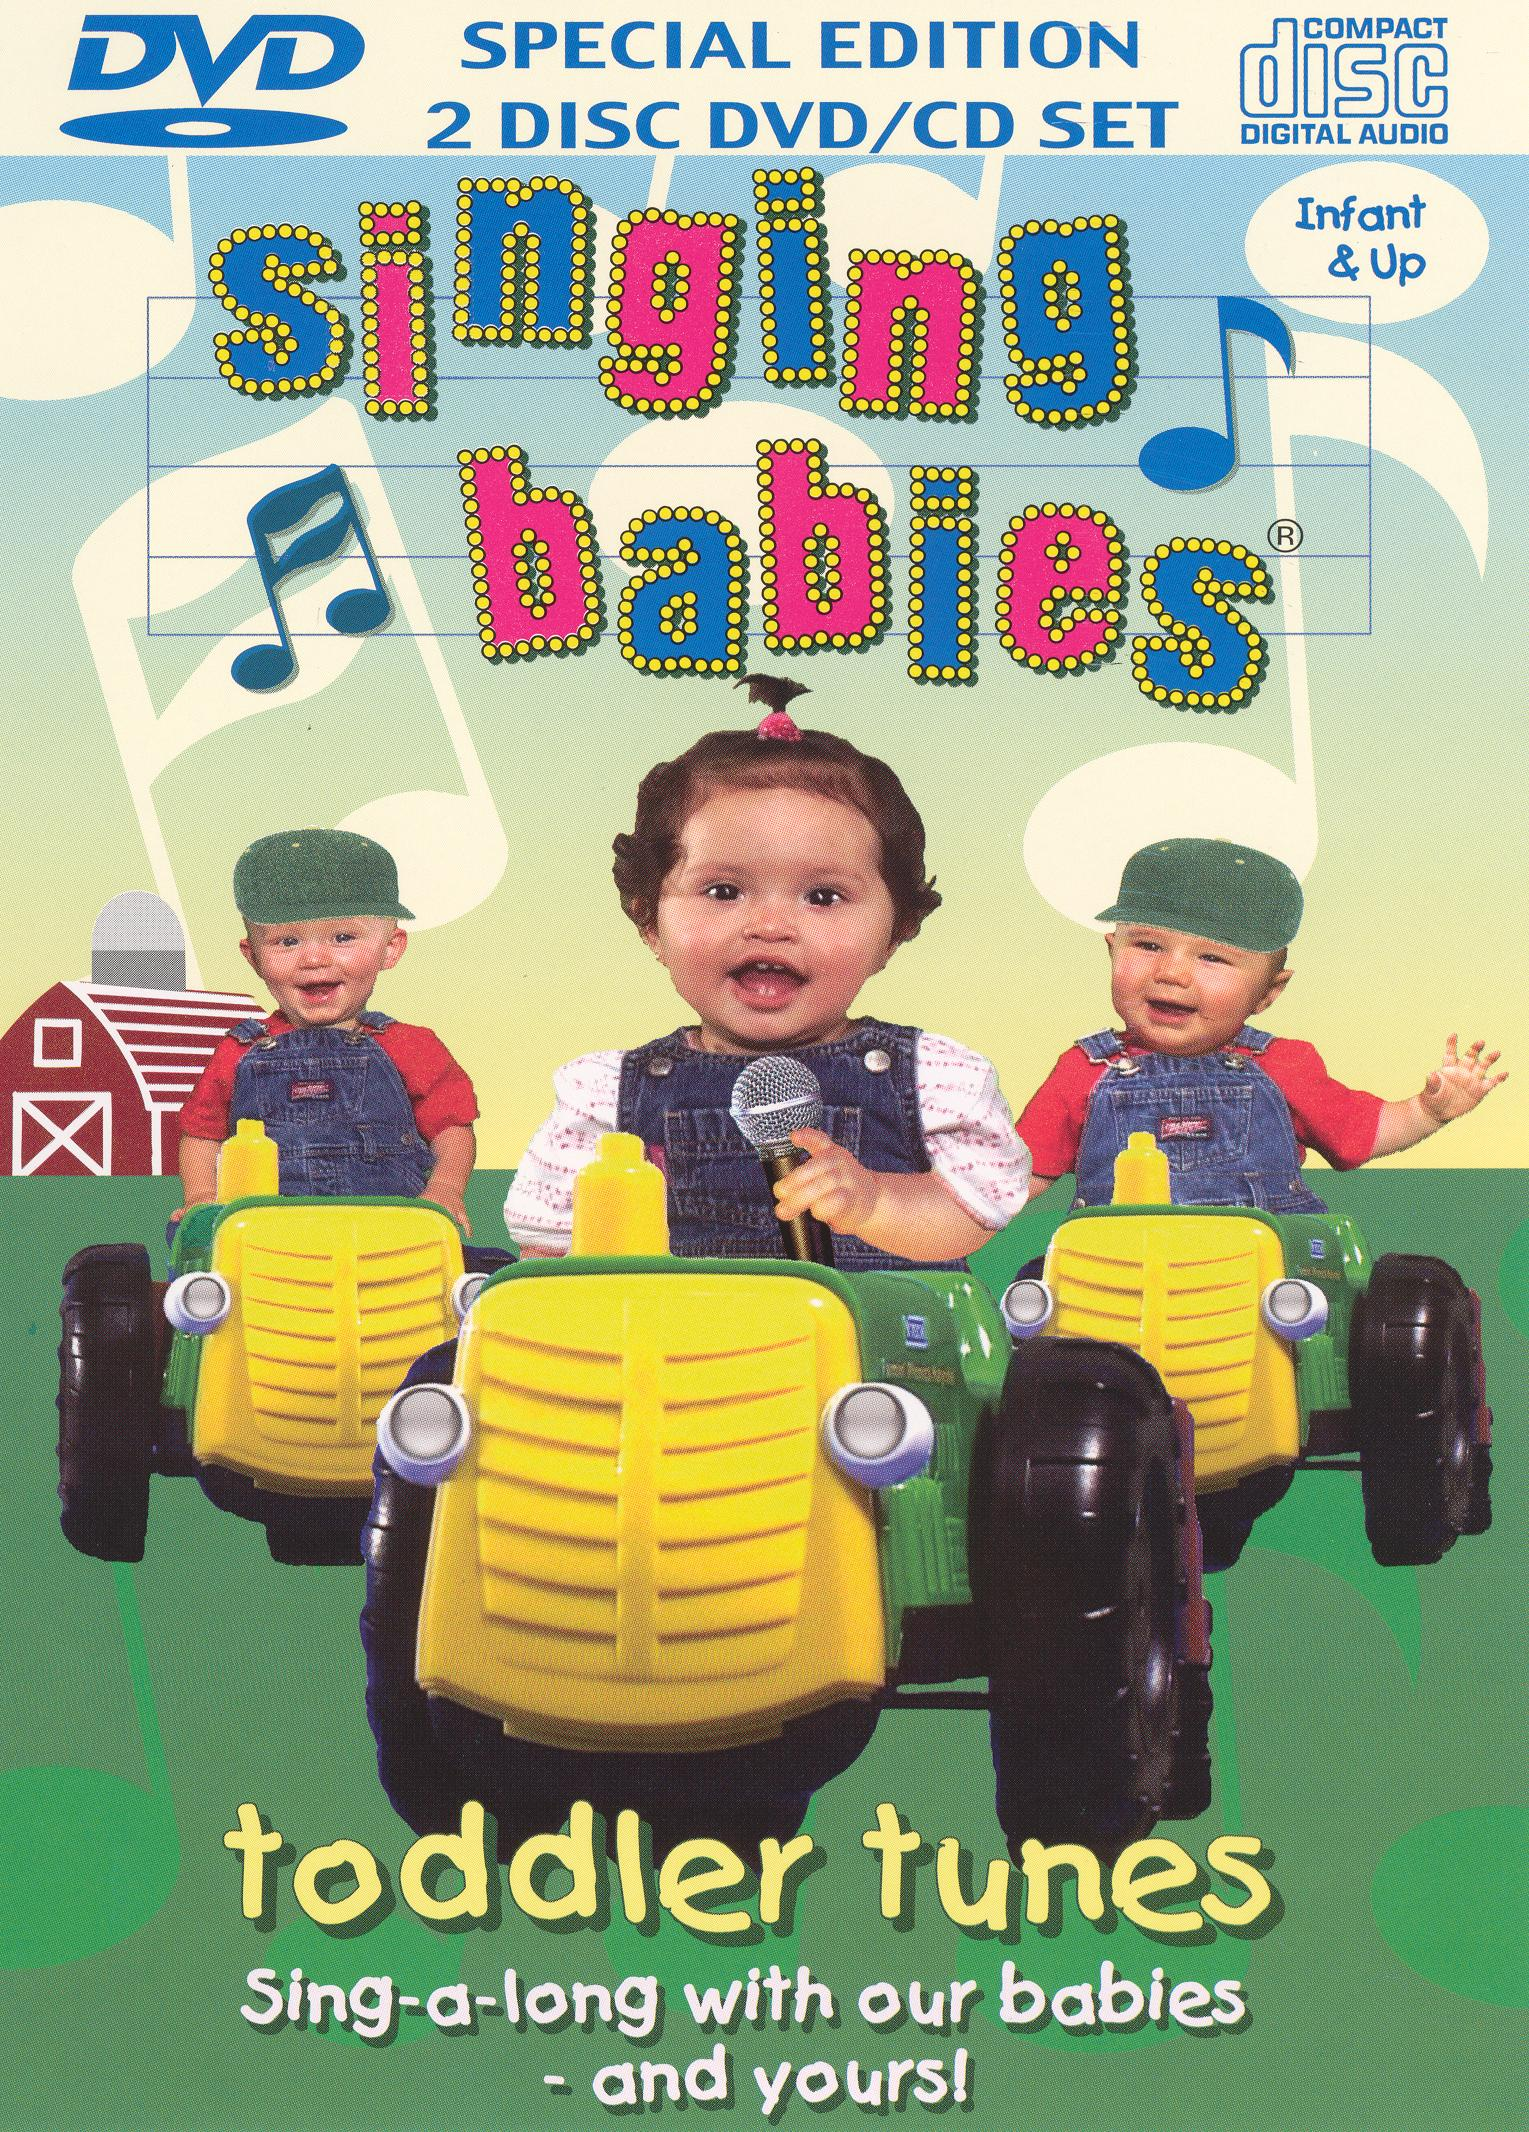 Singing Babies: Toddler Times